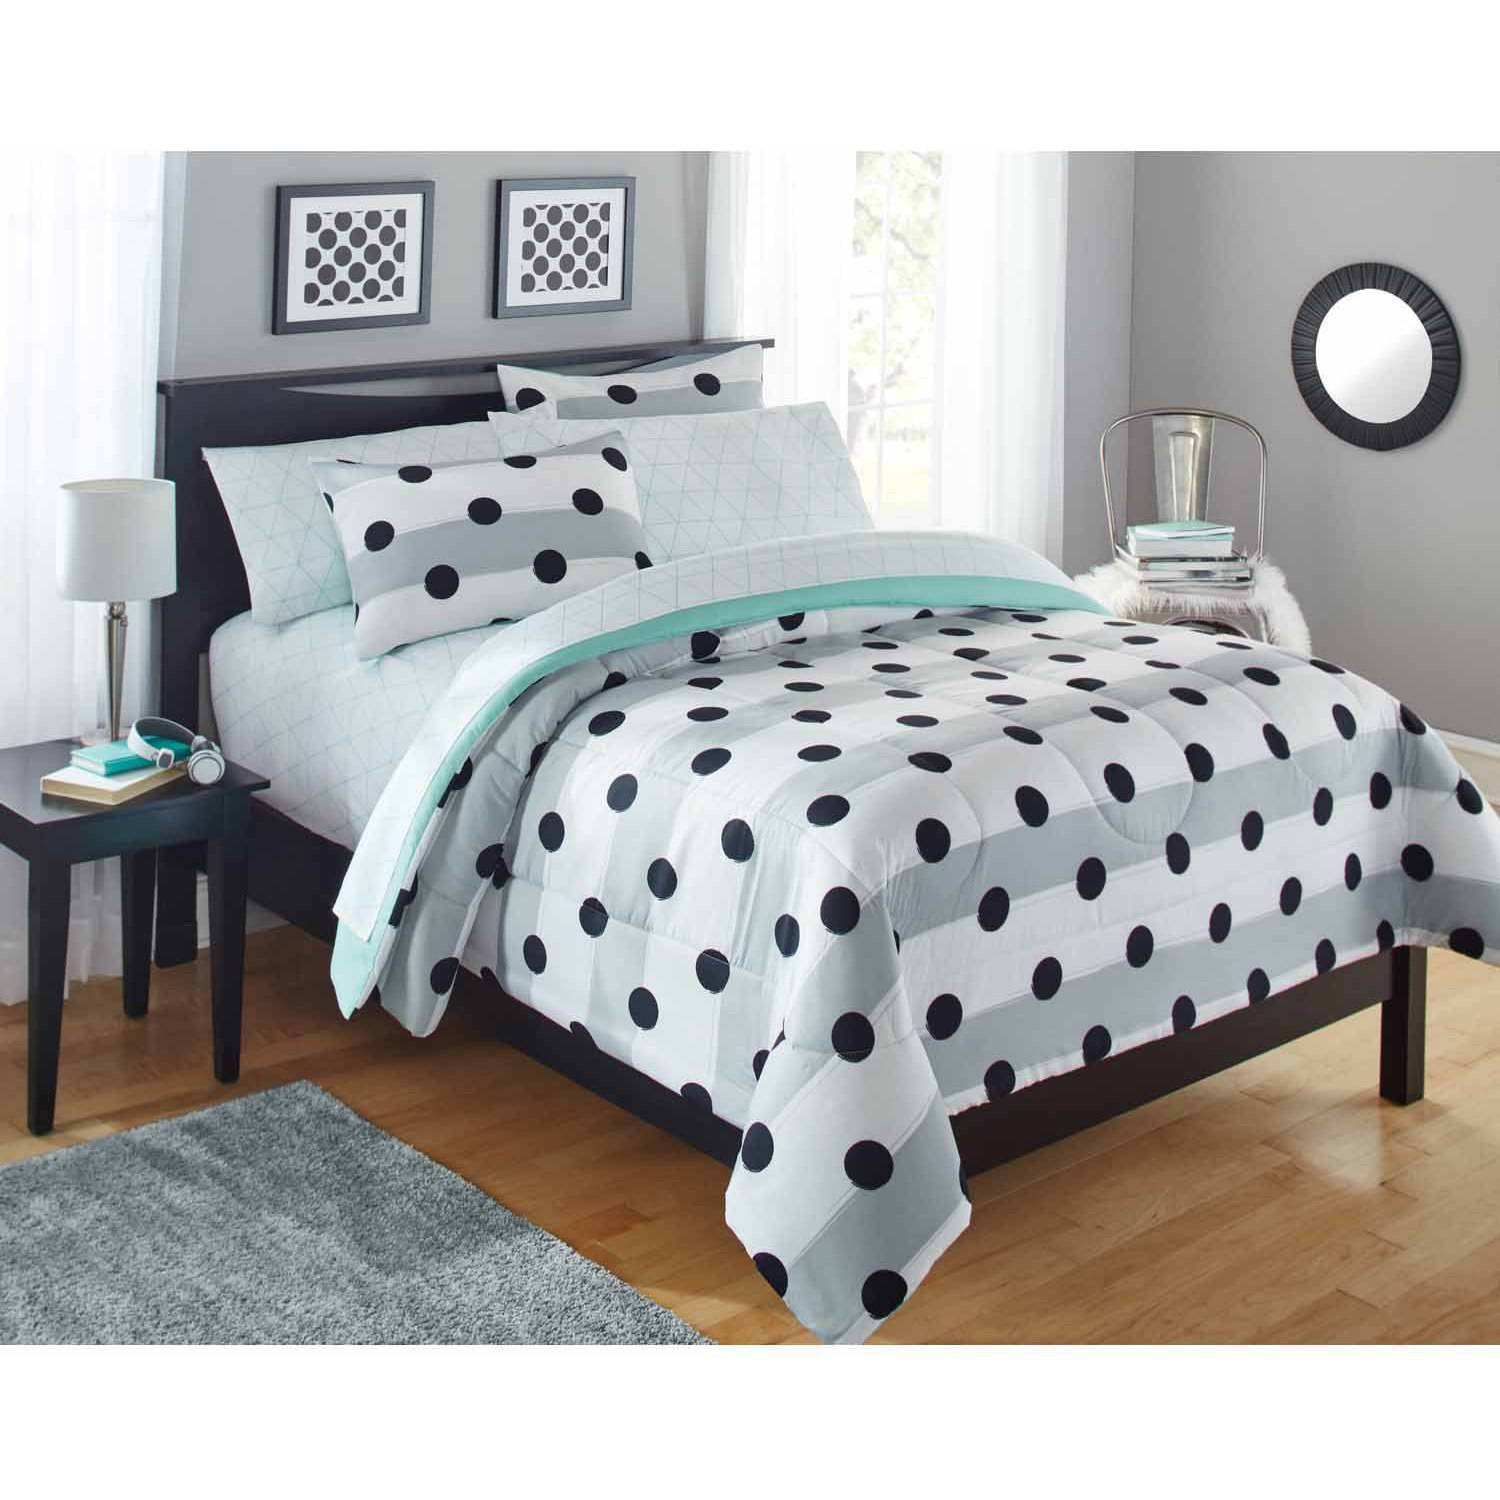 Your Zone Grey Stripe Dot Bed in a Bag Bedding Comforter Set